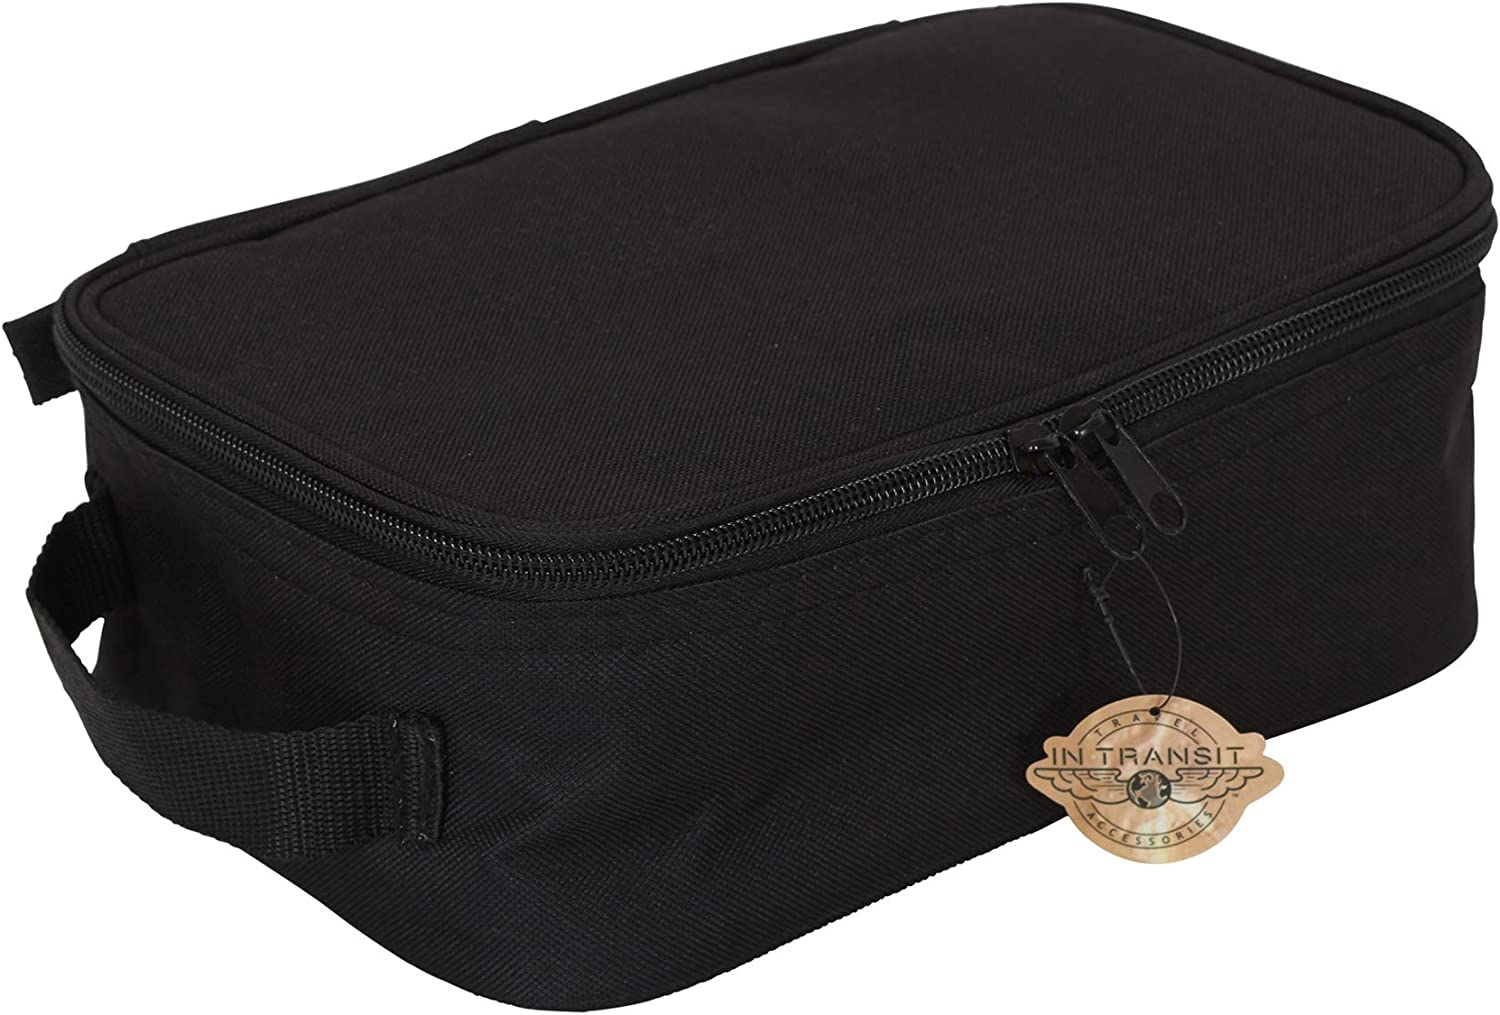 Household Essentials 6706 Grooming Toiletry Travel Bag Organizer for Men and Women Black